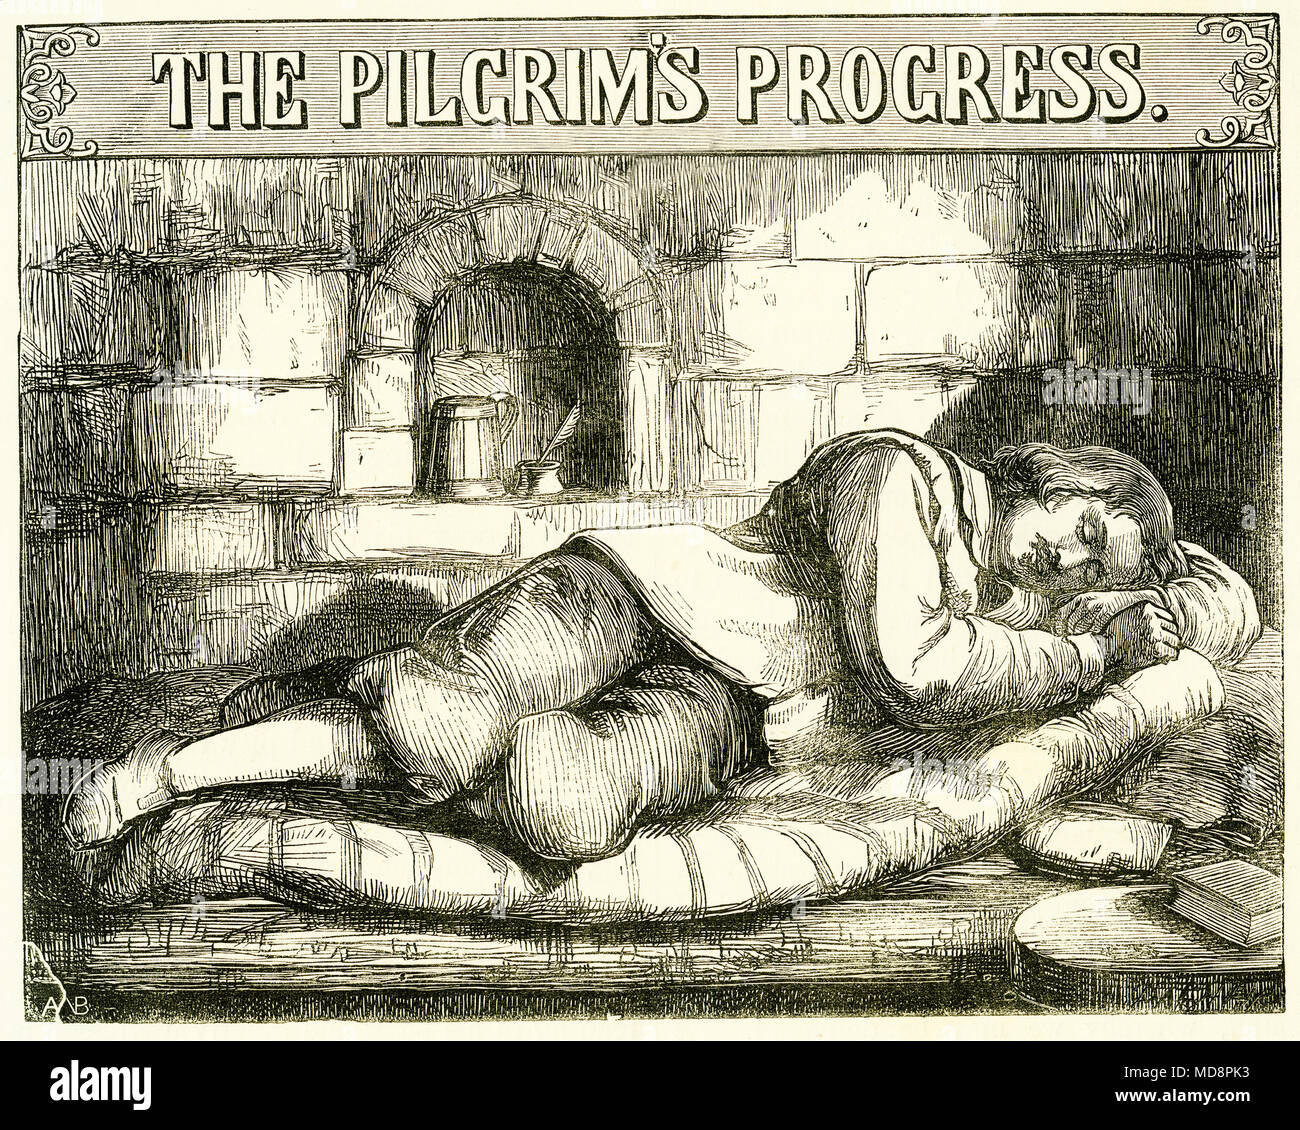 Engraving of the title page for The Pilgrim's Progress by John Bunyan, a classical work of English literature. From an original engraving in The Select Works of John Bunyan, circa 1840. - Stock Image